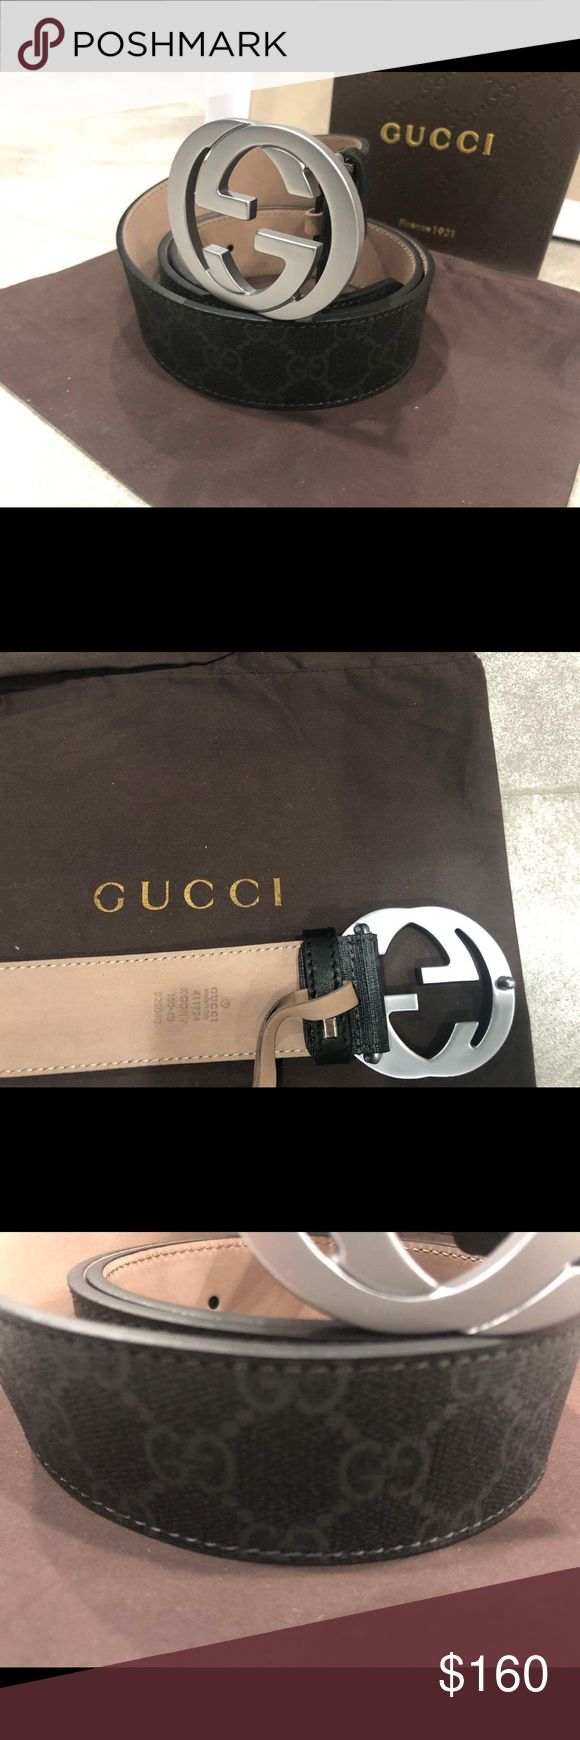 Authentic Men Gucci Belt Black Canvas 100% Authentic Mens Gucci Belt  Sizing made easy! Just choose the size u wear in pants.   Comes with box, dust bag and tags!!  From a smoke and pet free home!! Gucci Accessories Belts